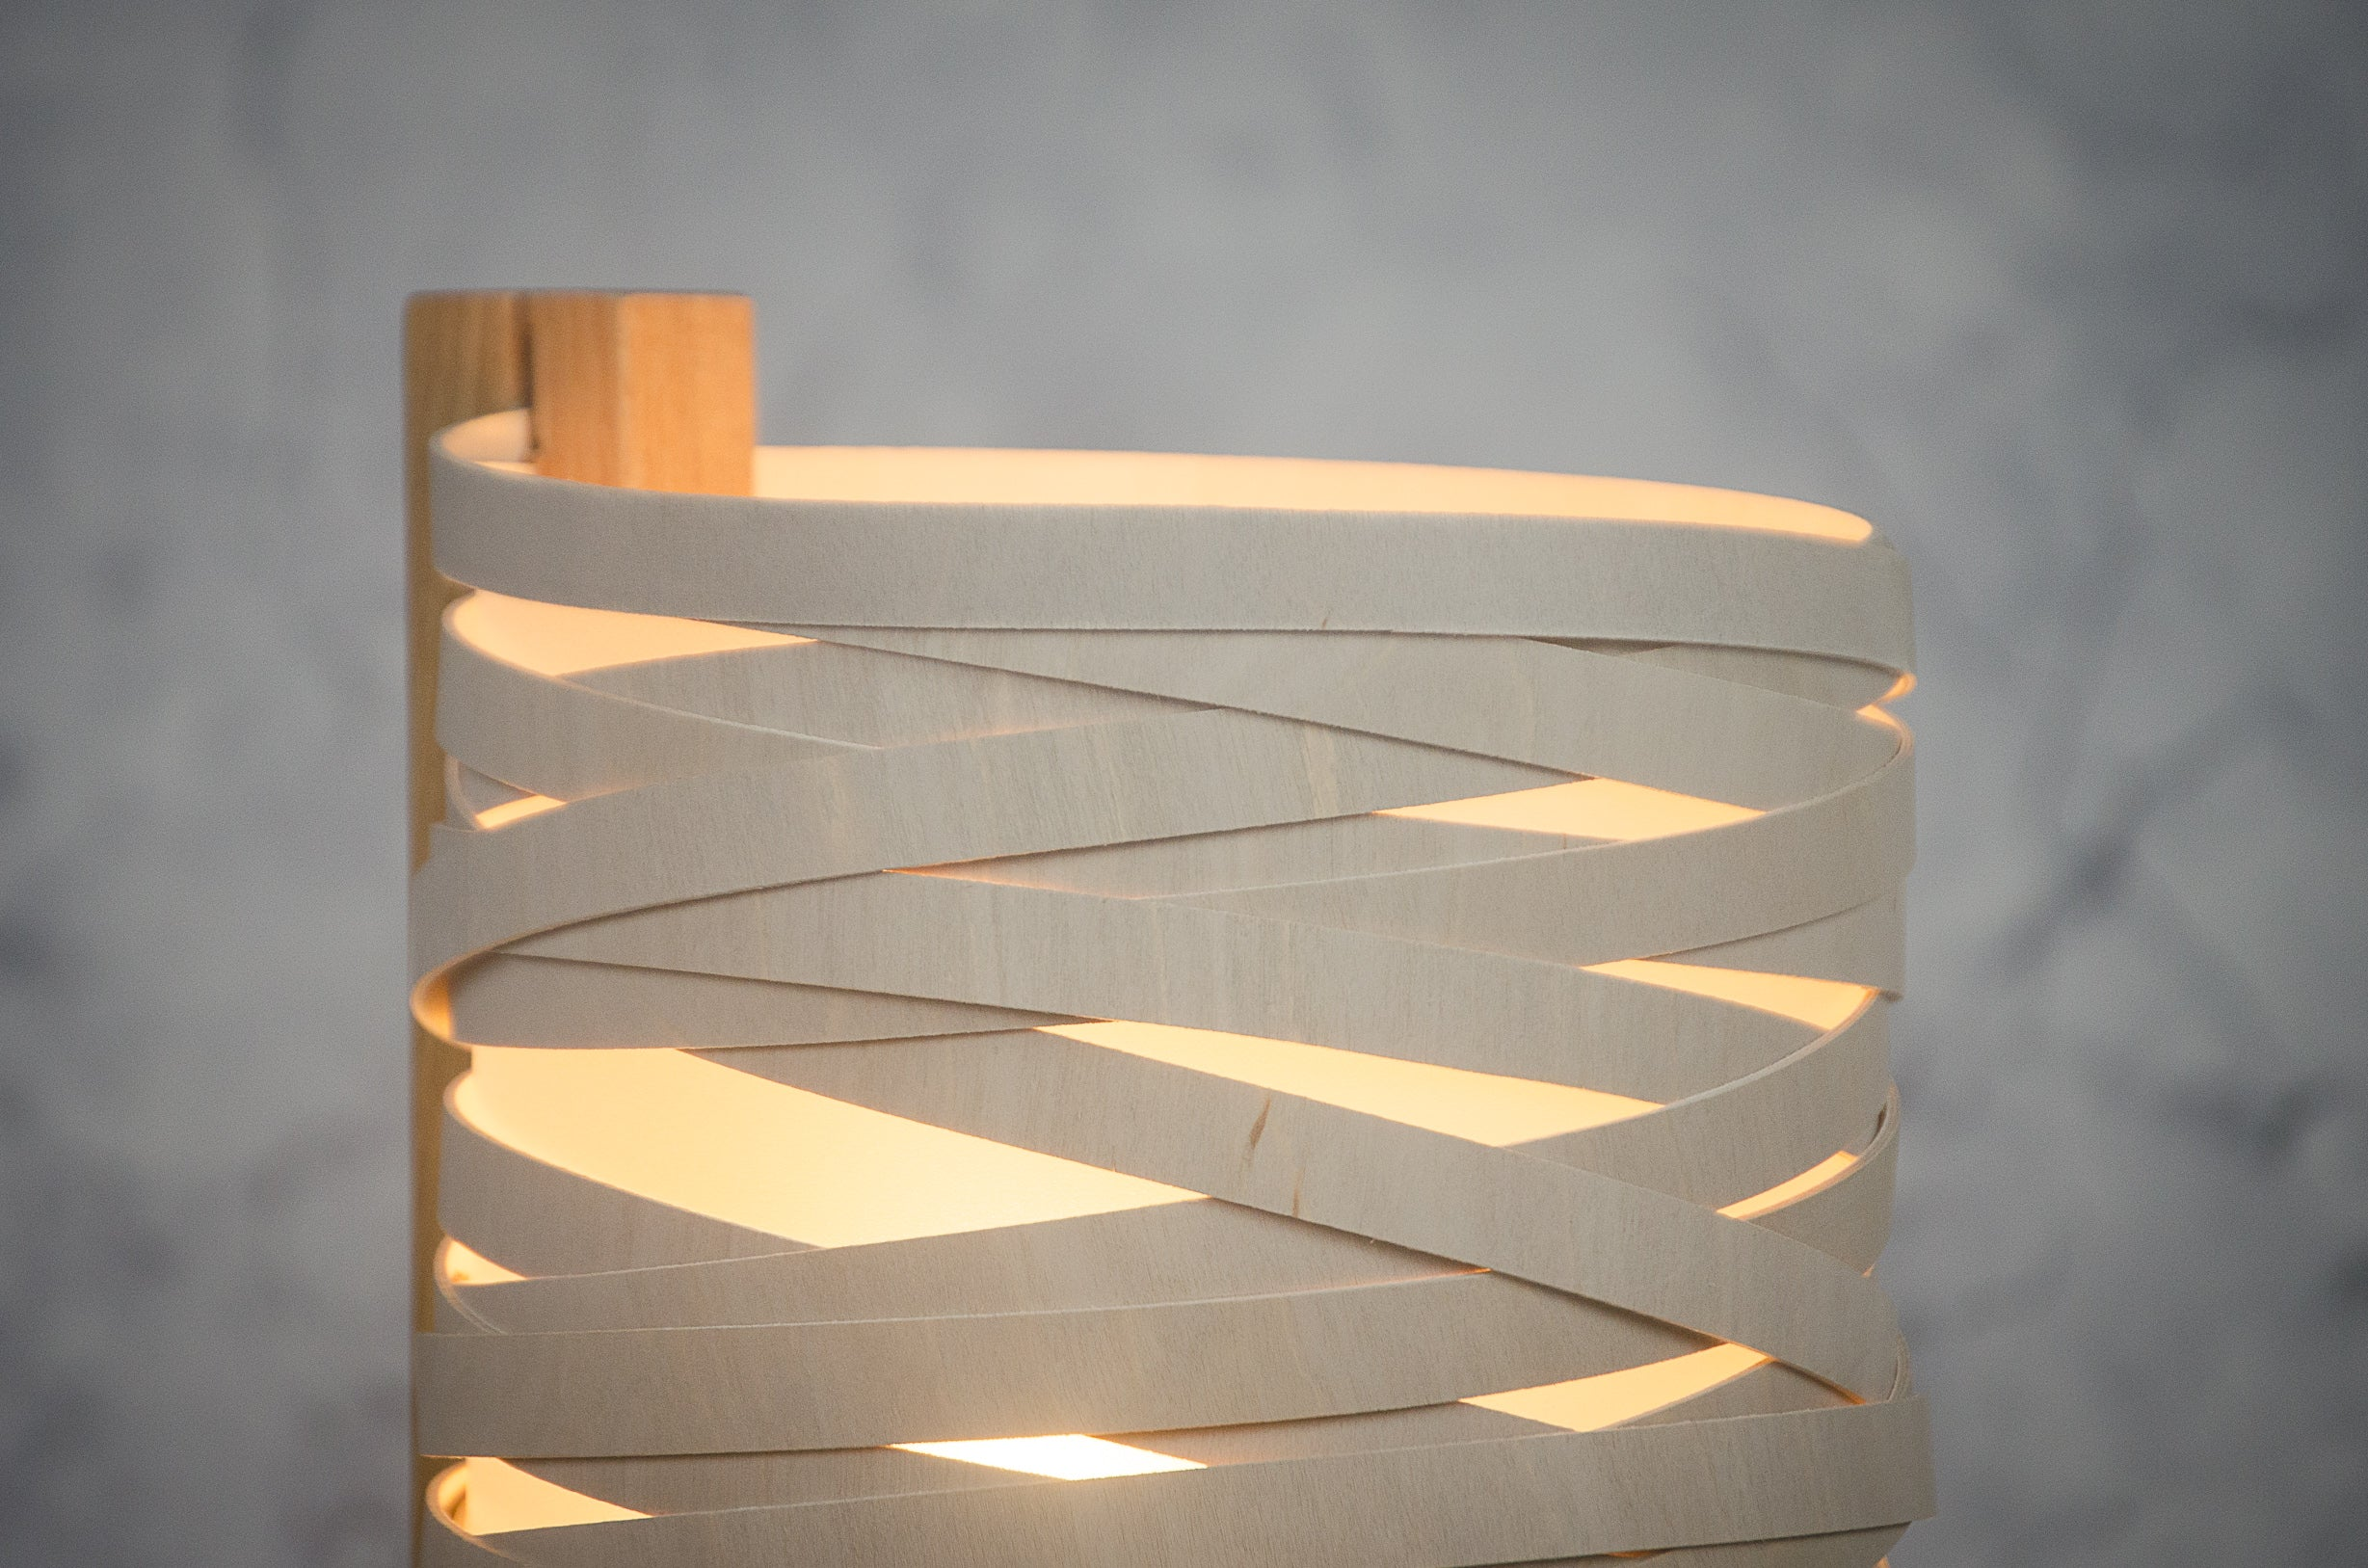 Handcrafted in Devon using sustainable woods, these lamps make great statement pieces for any modern interior. Oak base with bent birch ply & opaque polypropylene shade